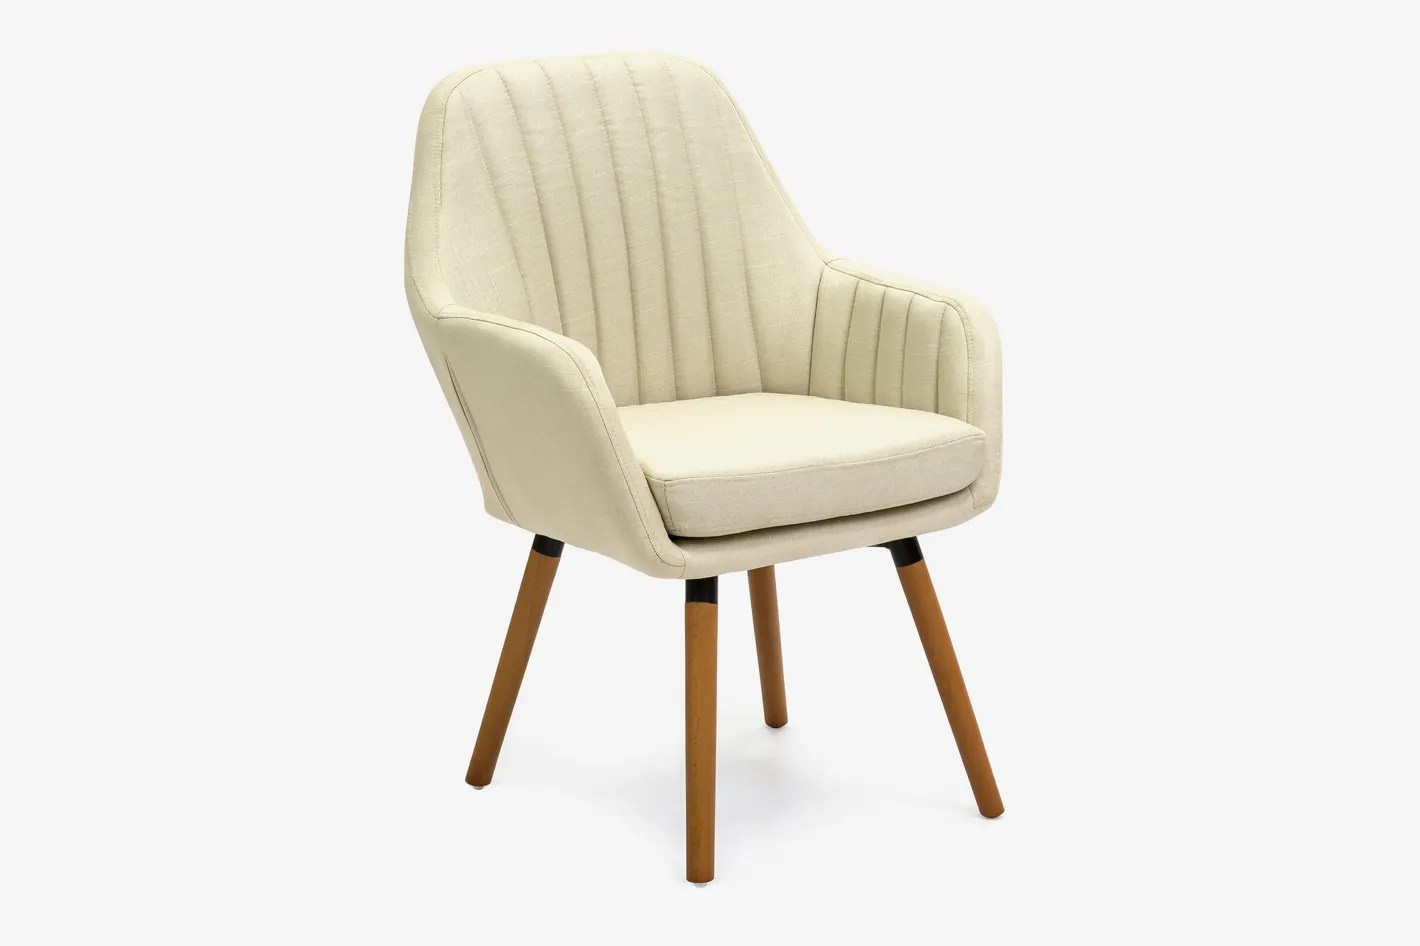 accent chairs on sale best chair for back surgery at walmart 2018